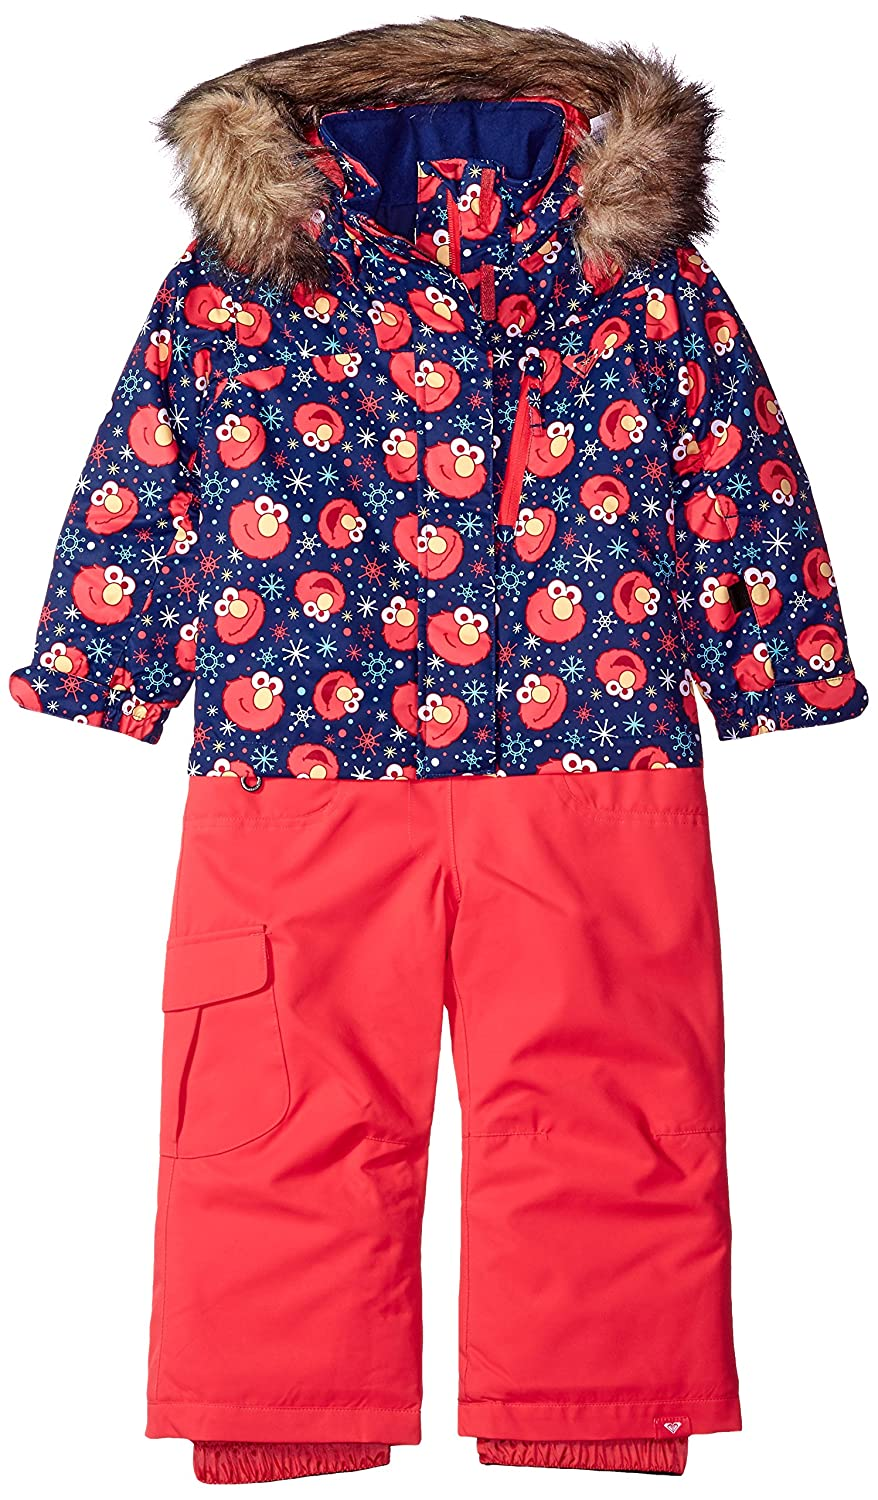 Roxy Girls Paradise Jumpsuit Elmo 4/5 Roxy Children' s Apparel ERLTS03001